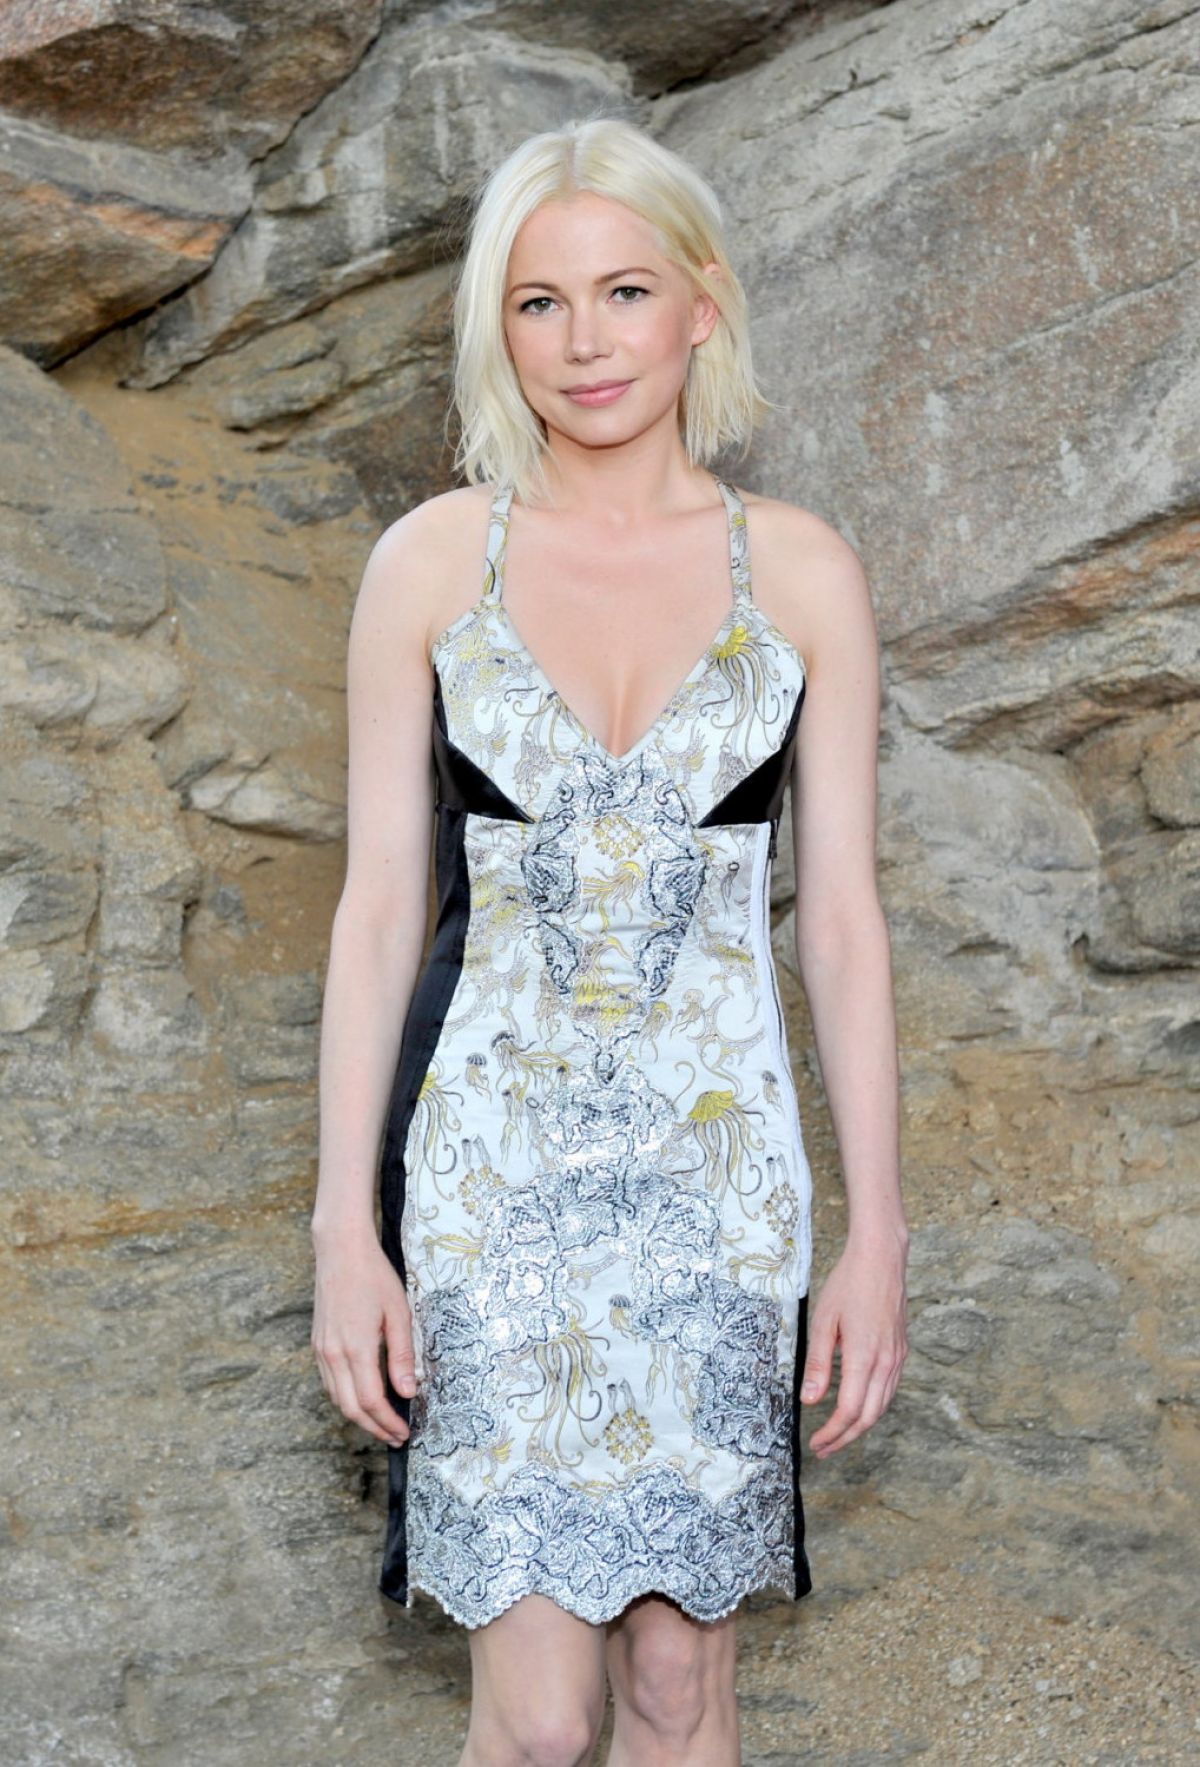 MICHELLE WILLIAMS at Louis Vuitton Cruise 2016 Resort Collection in ...